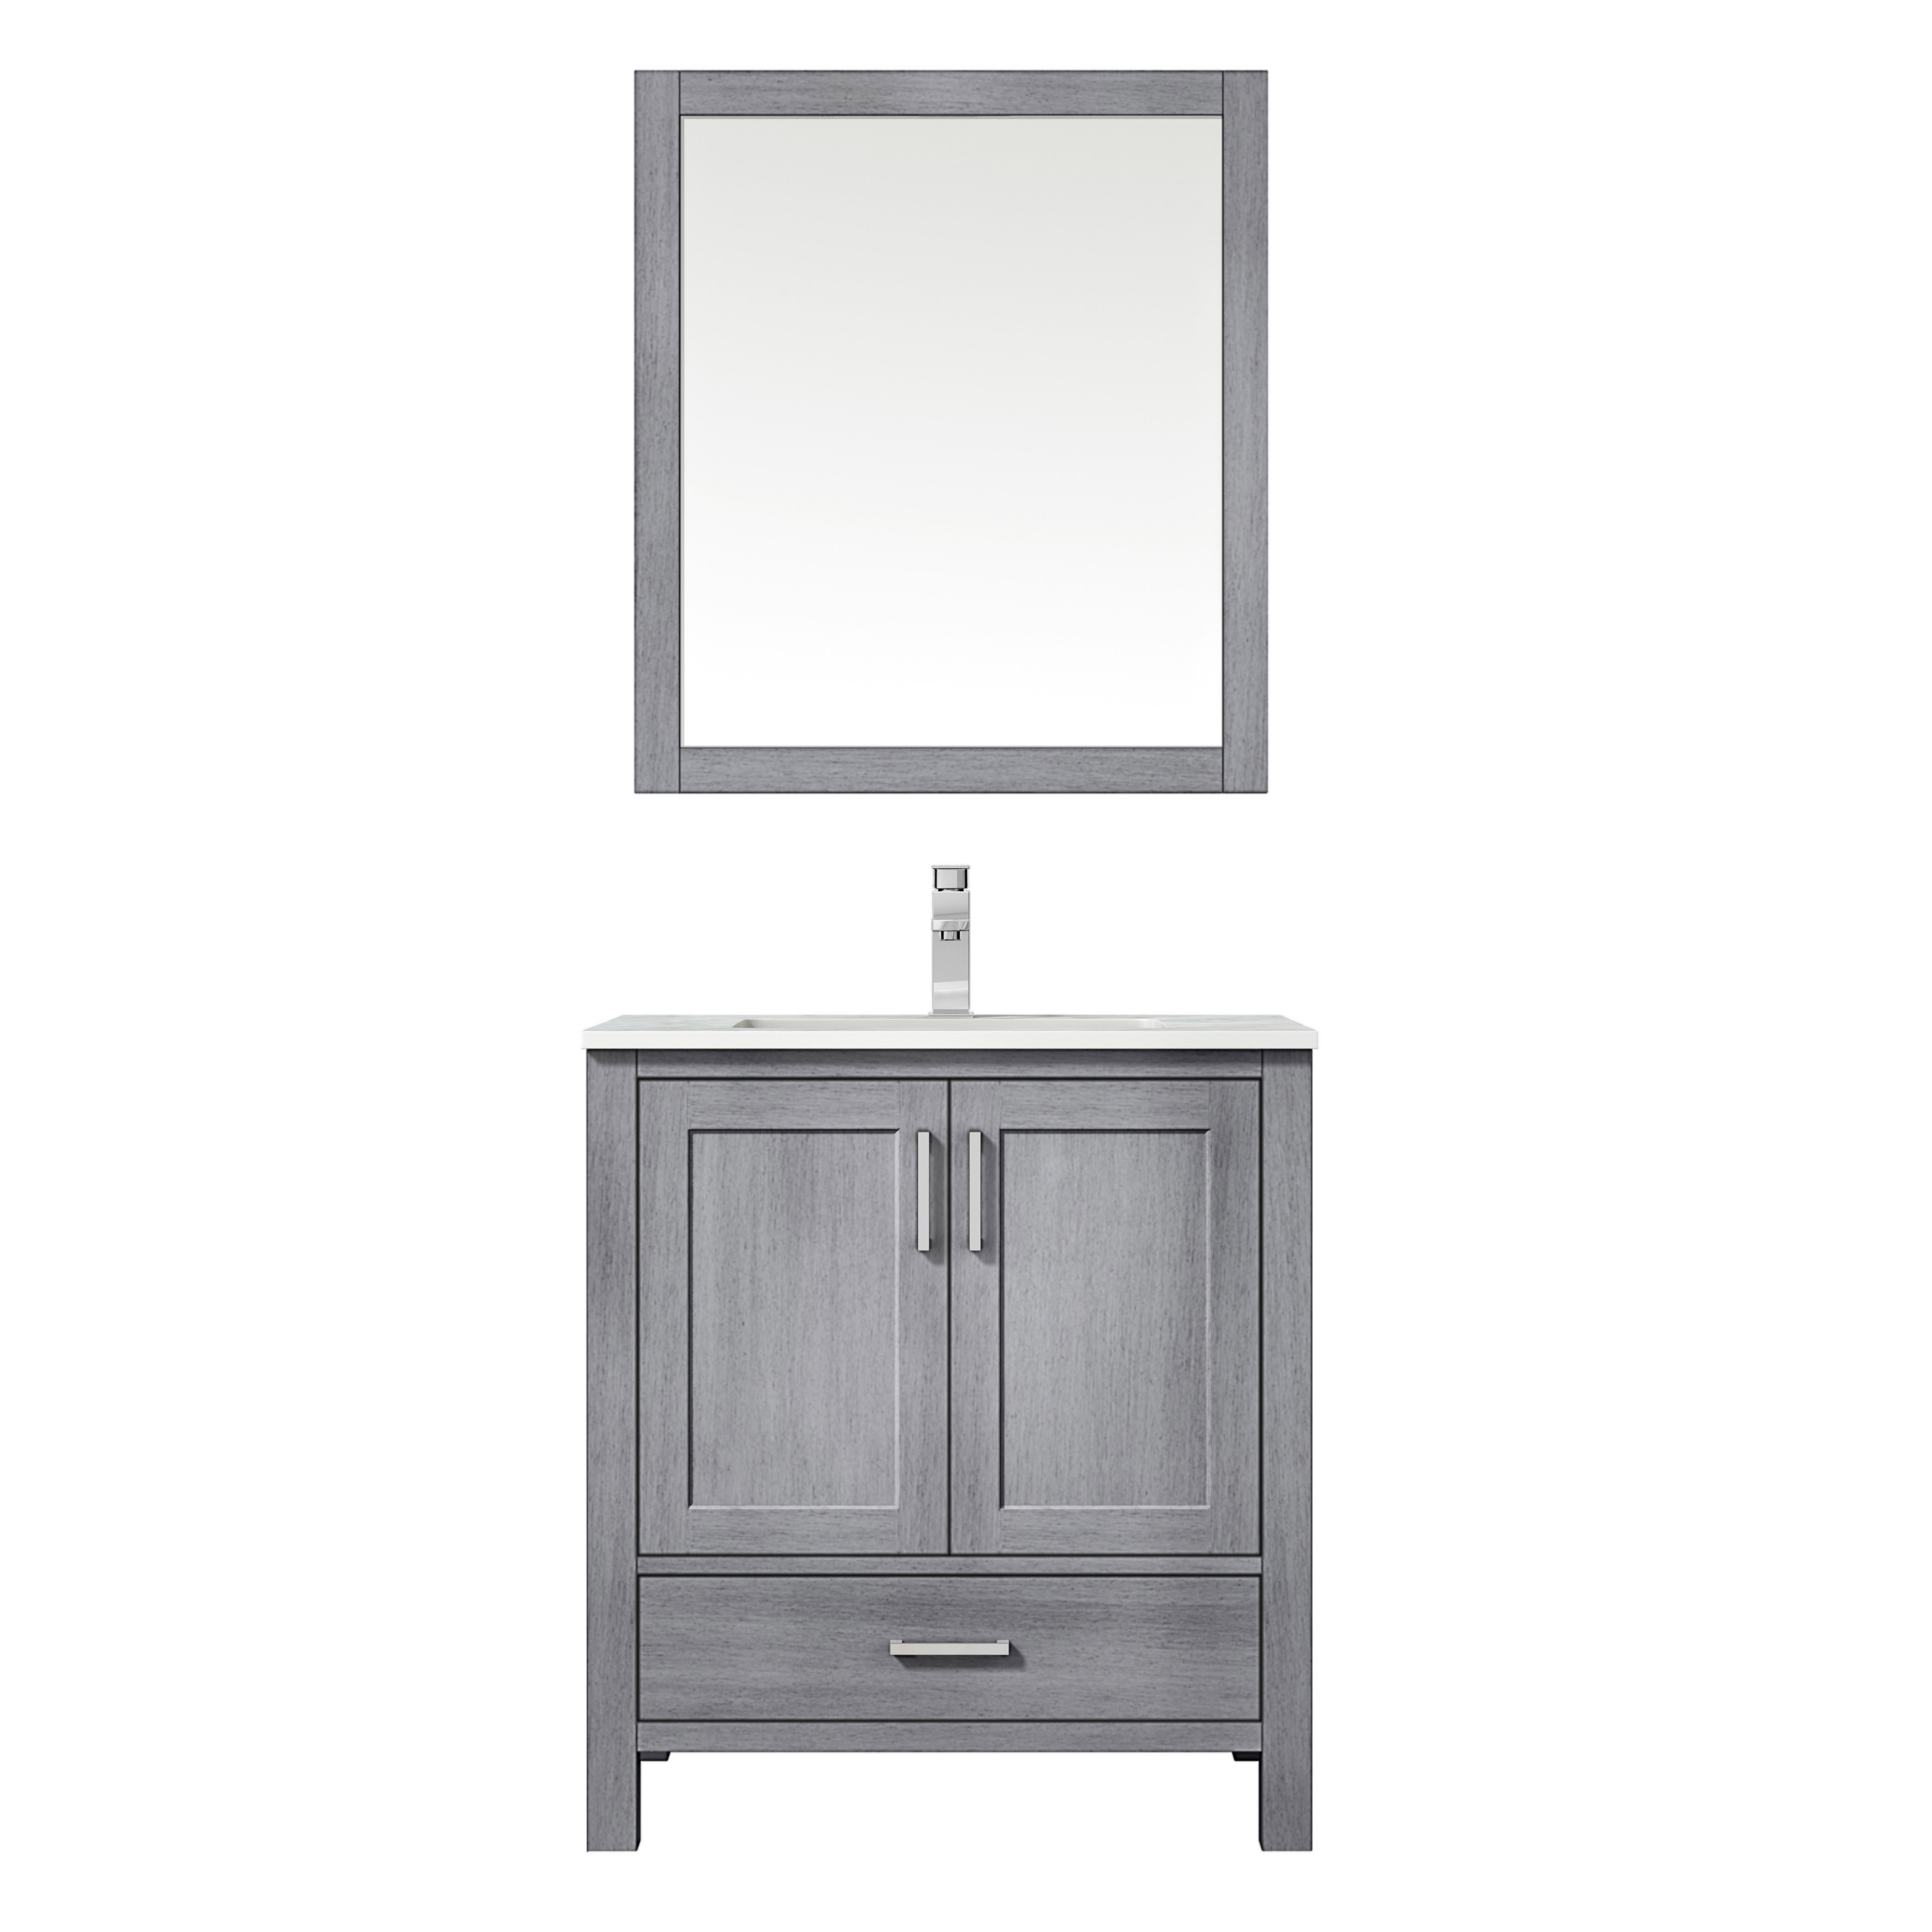 """30"""" Distressed Grey Vanity Cabinet Only with Countertop and Mirror Options"""